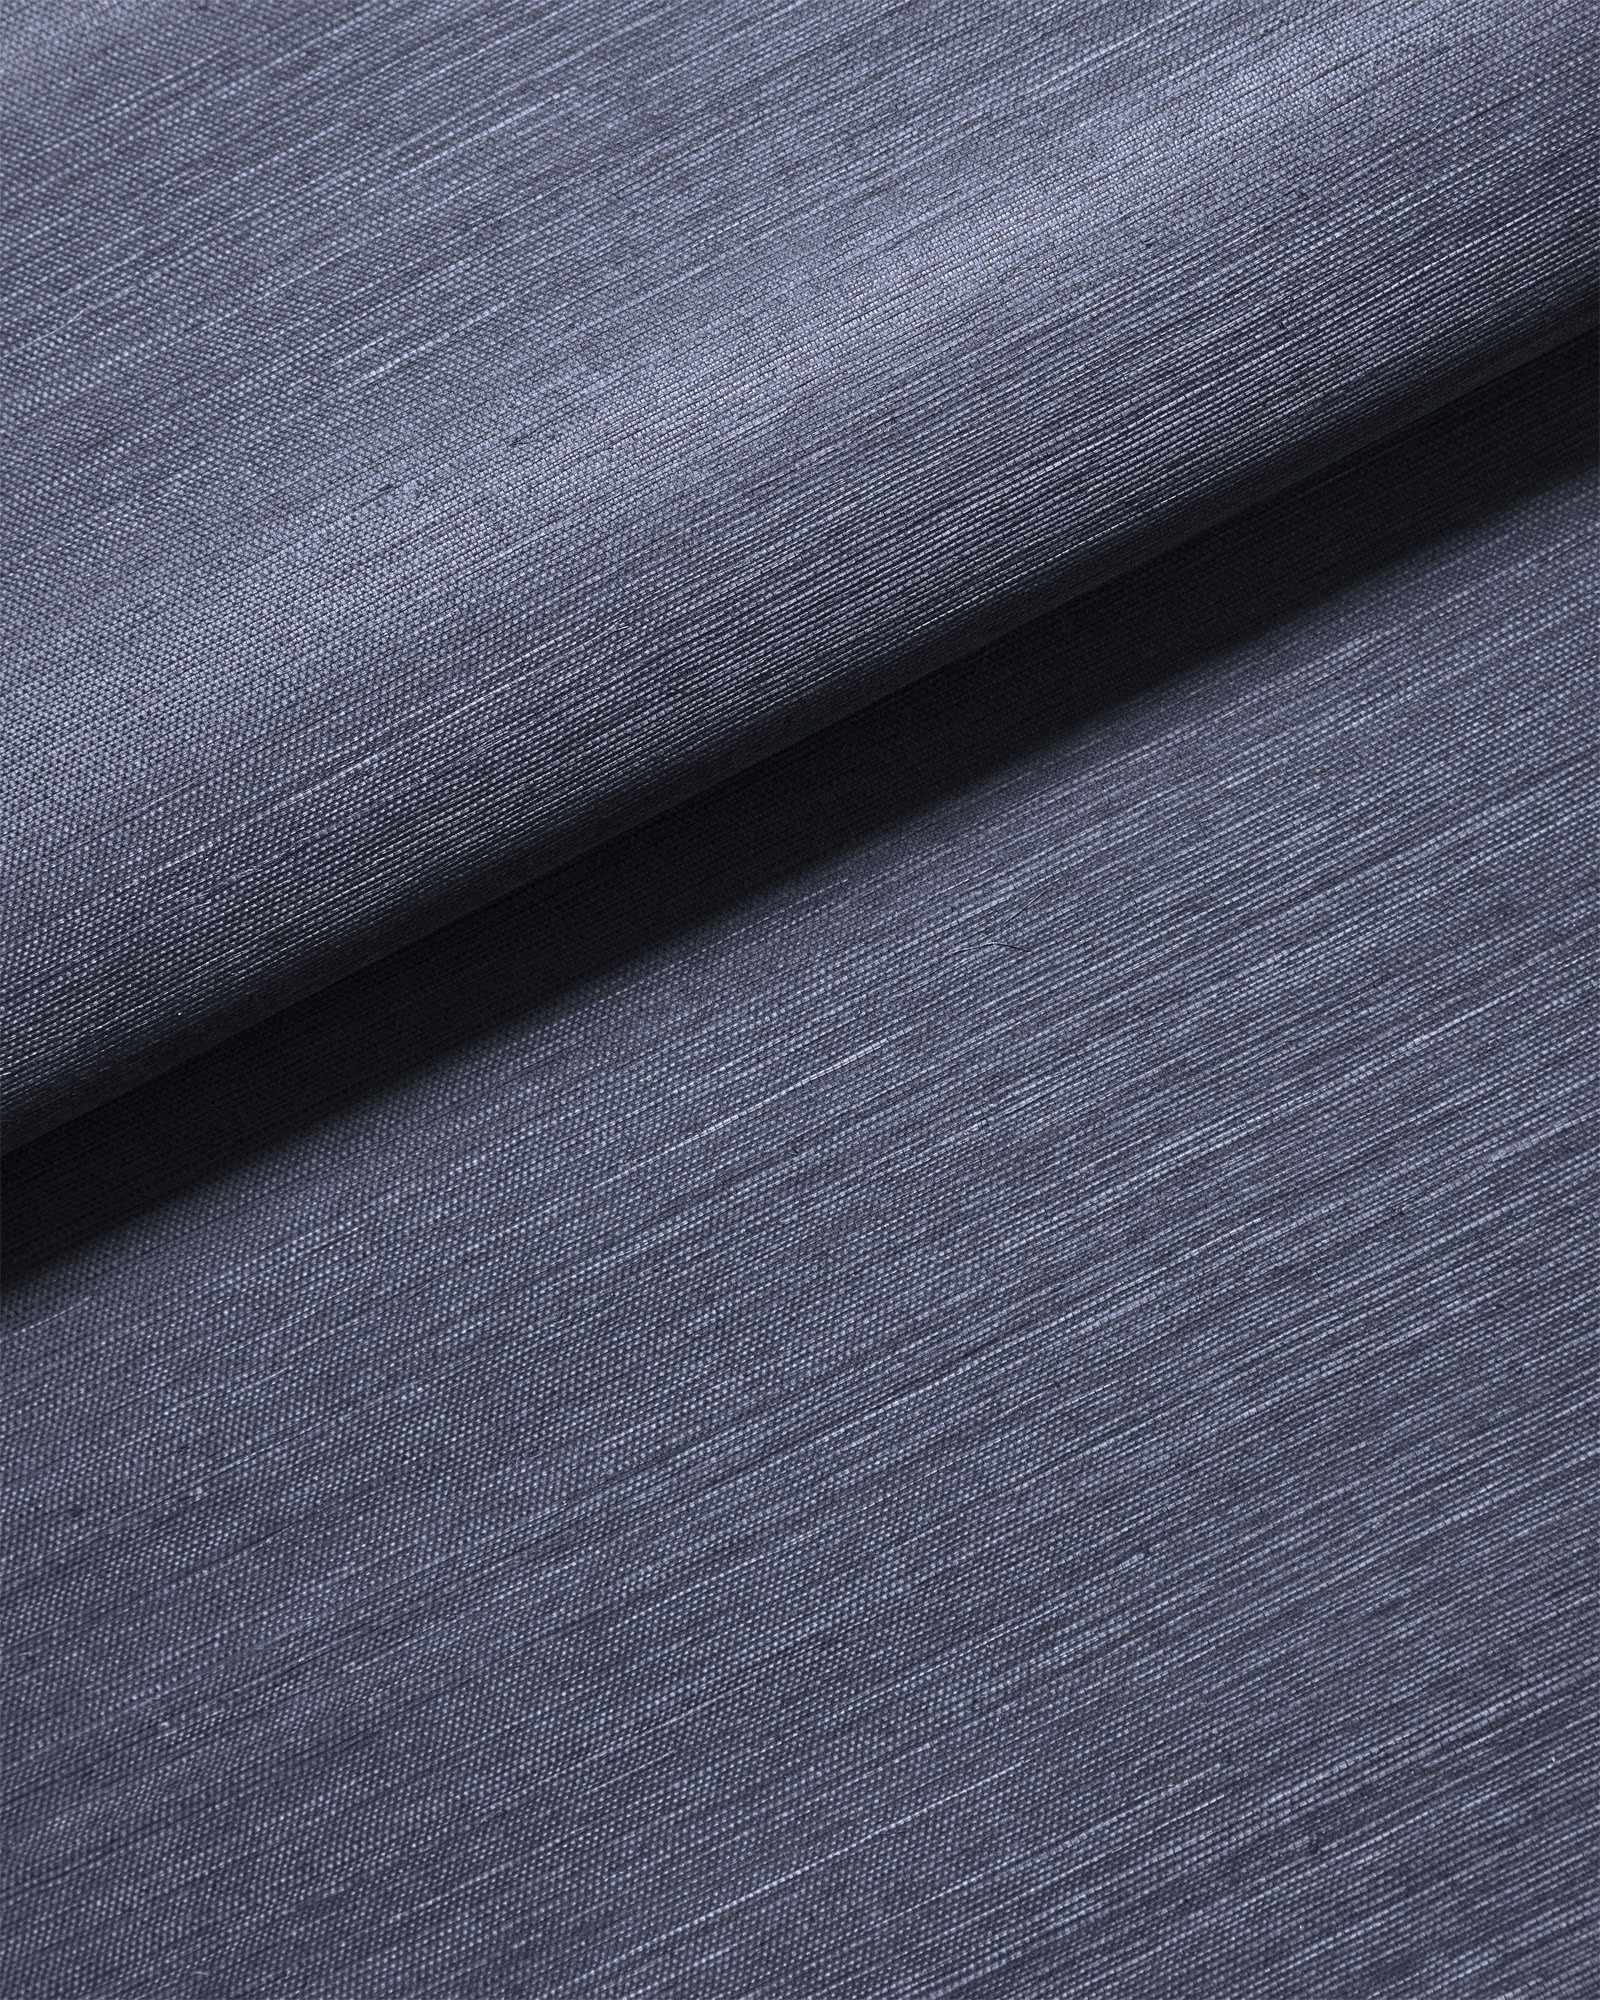 Grasscloth Wallcovering, Navy